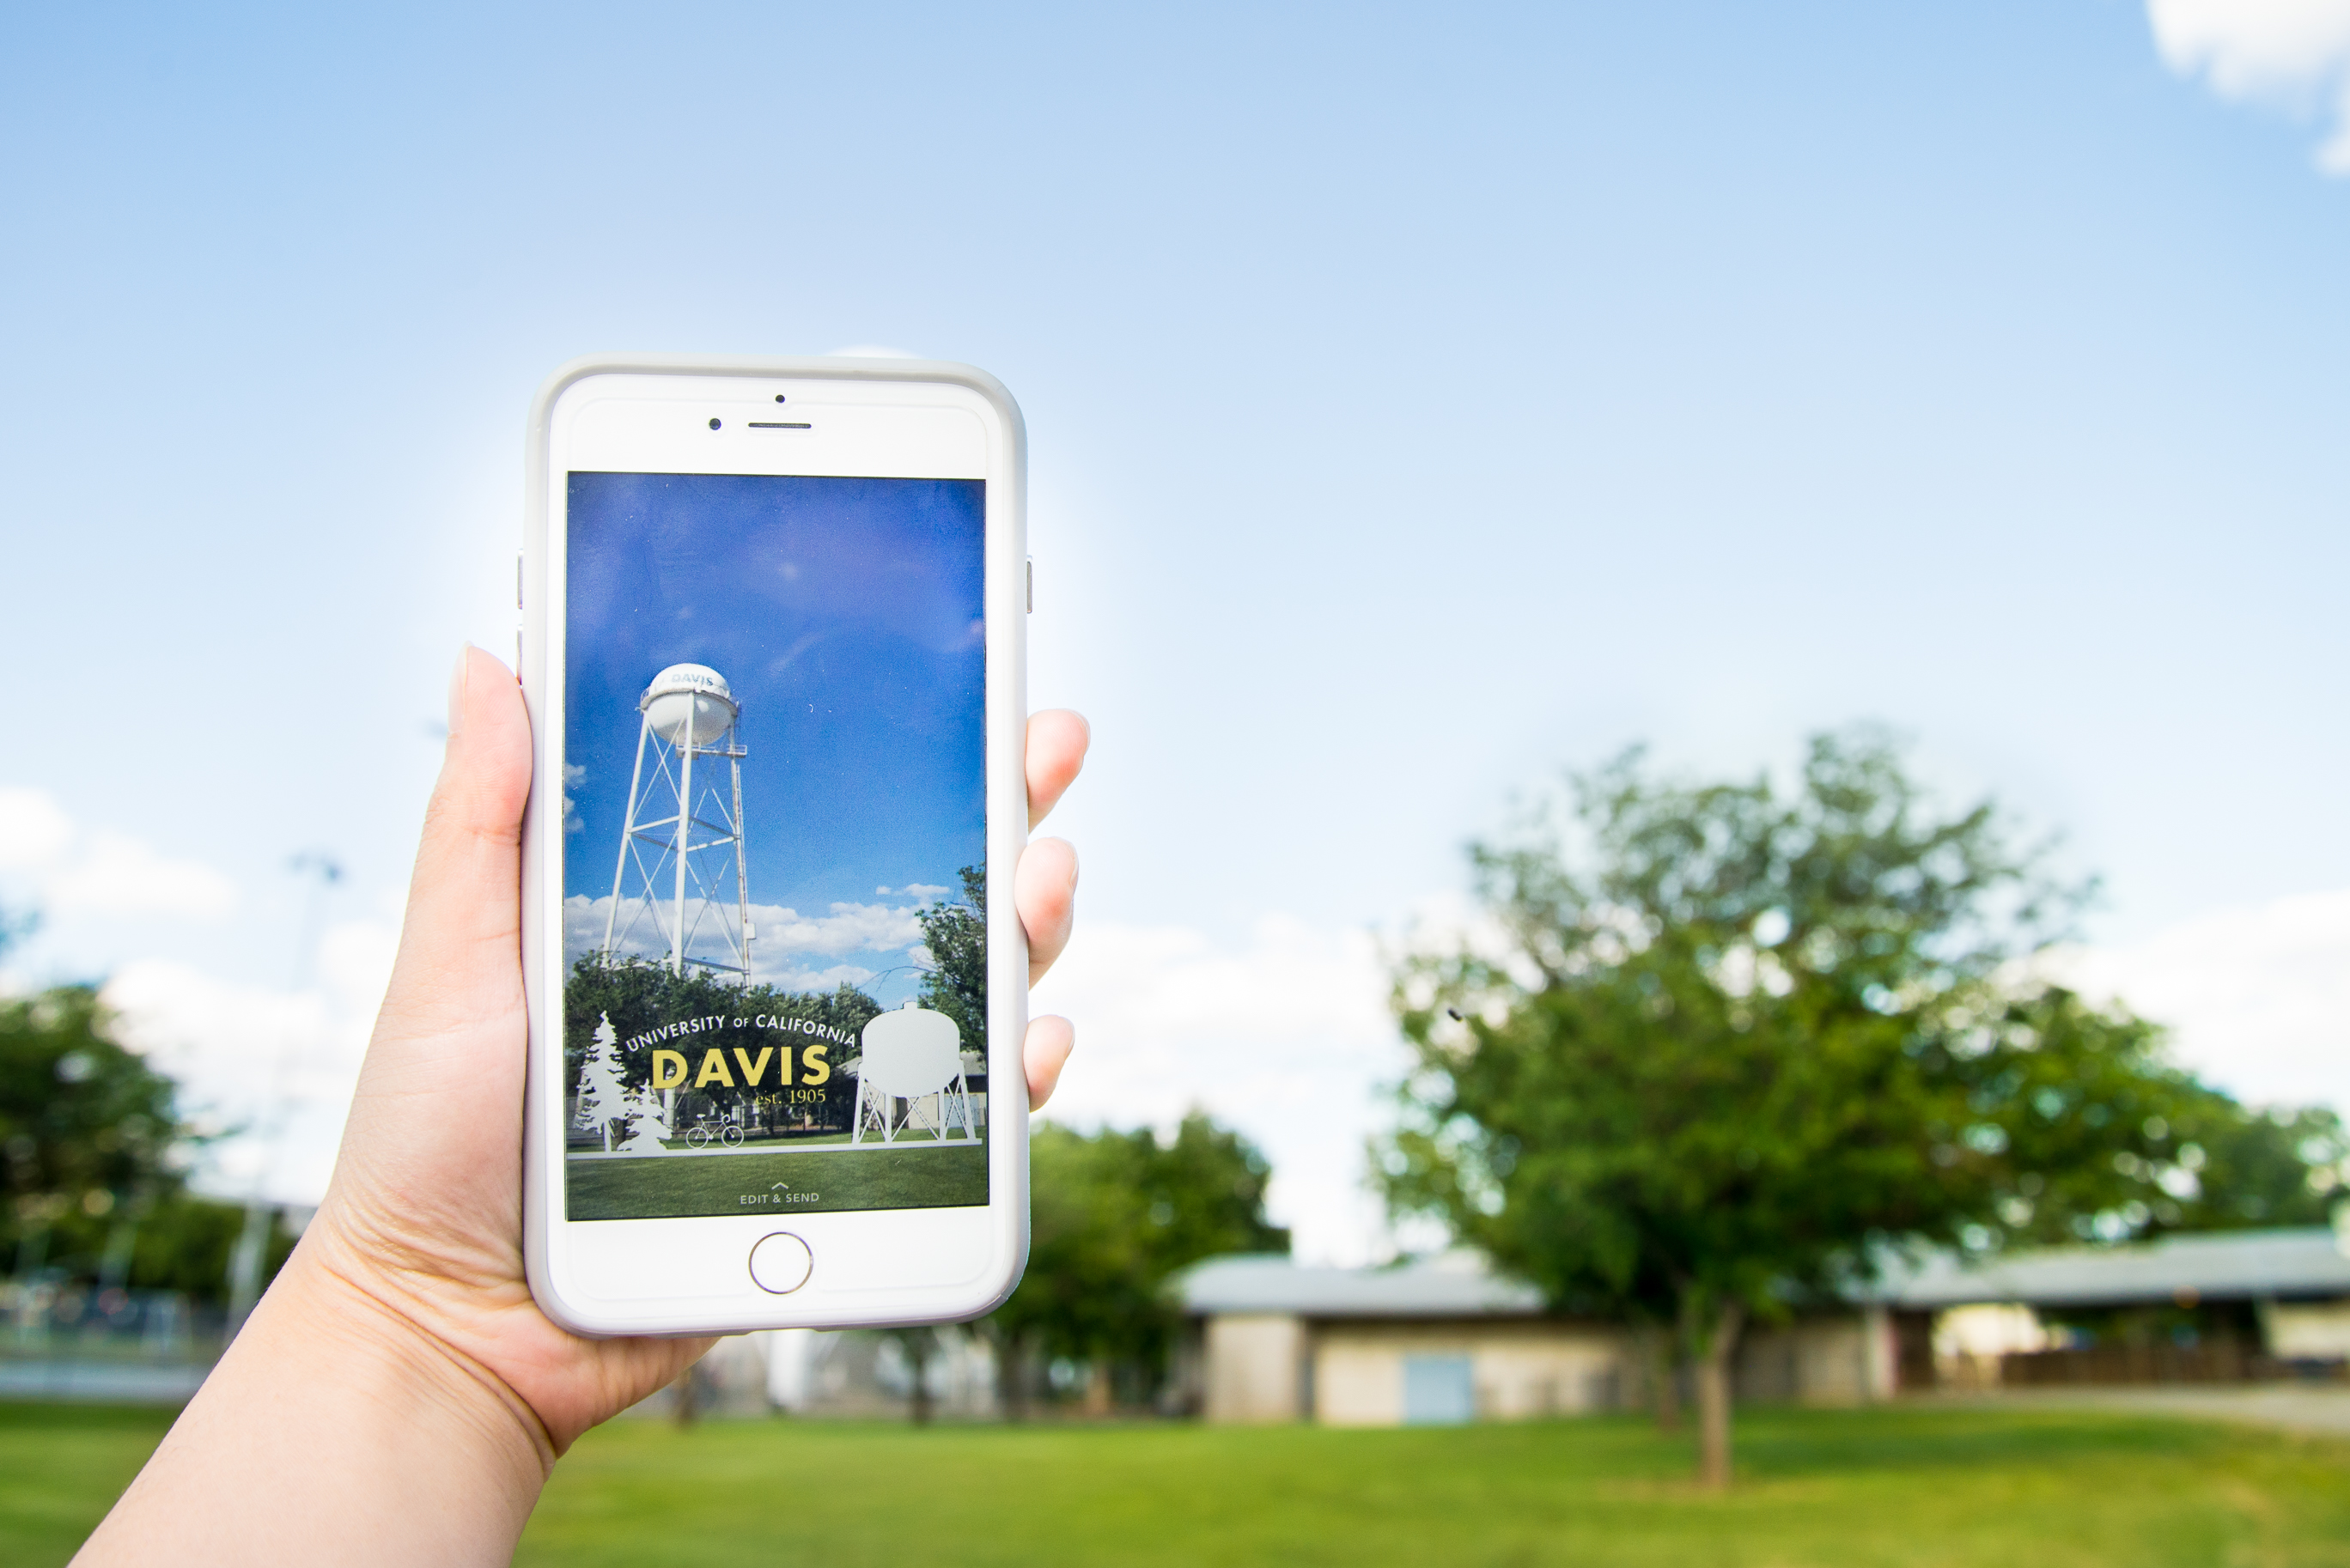 Best Campus Snapchat Filter: The White Water Tower